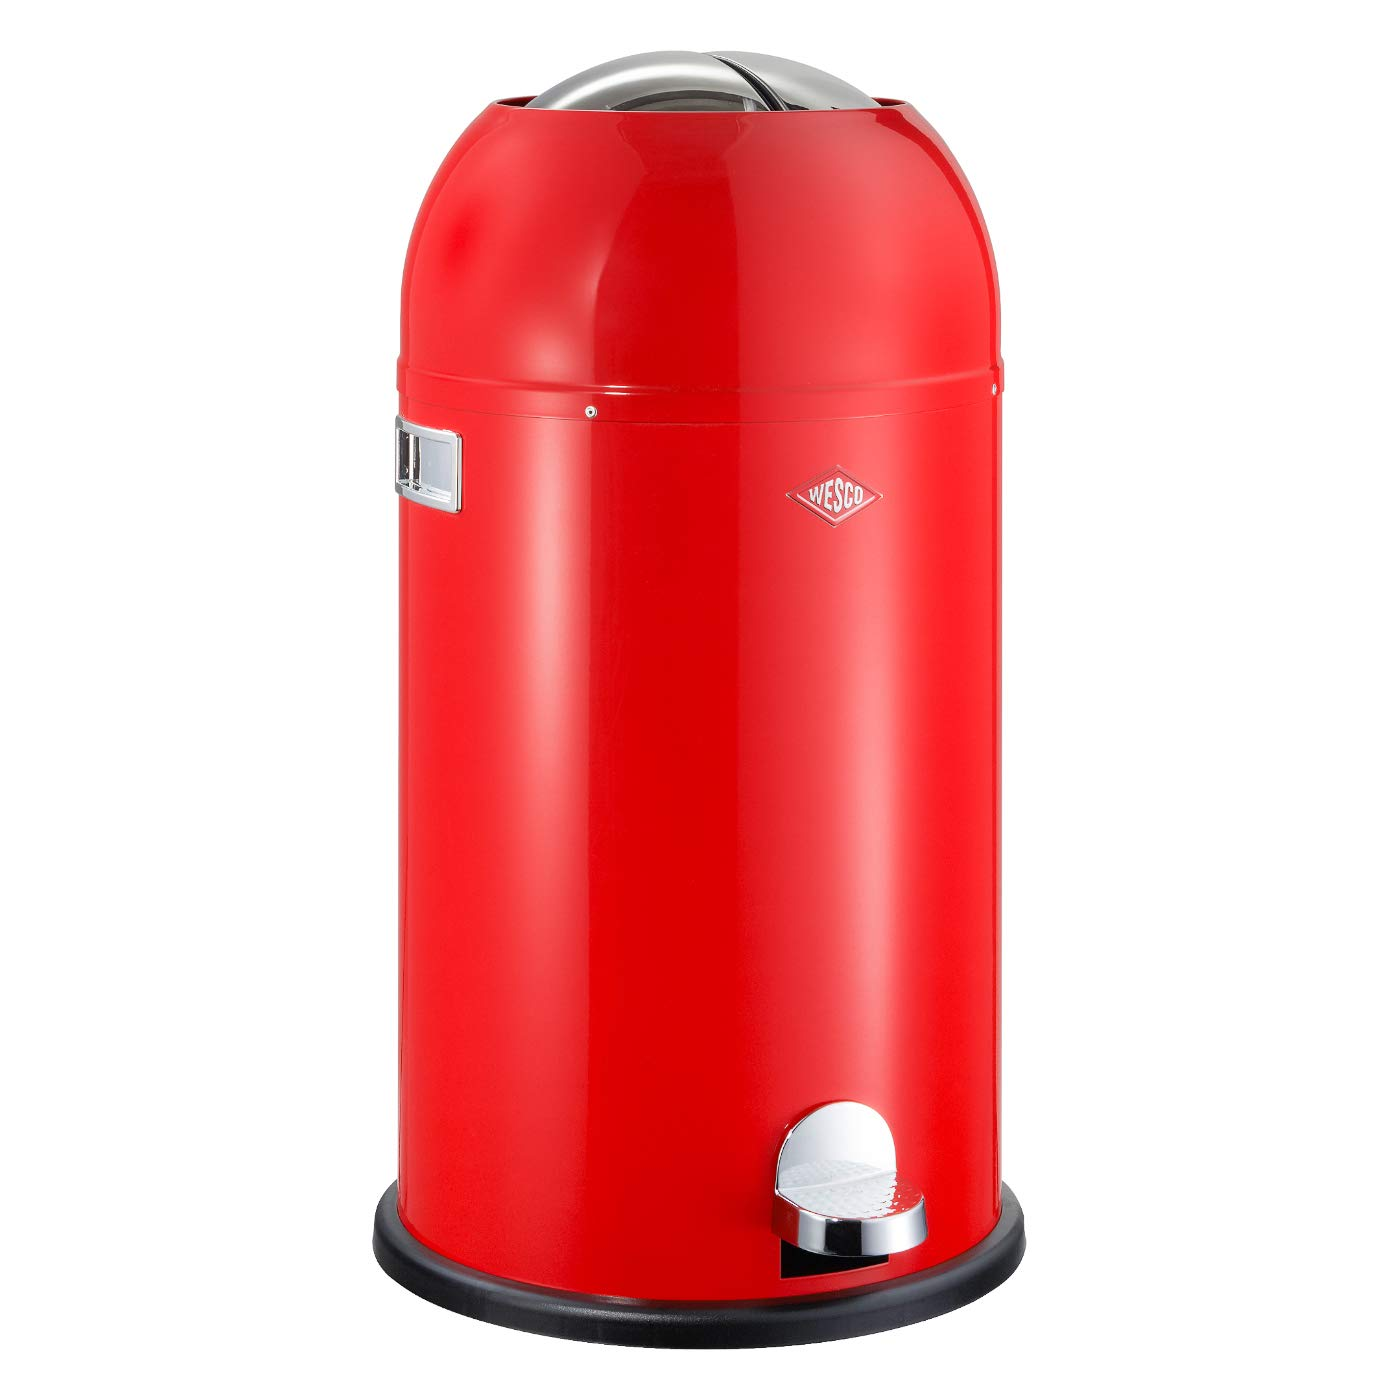 Wesco Kickmaster - German Designed - Step Trash Can, Powder Coated Steel, 8.7 Gallon / 33 L, Red